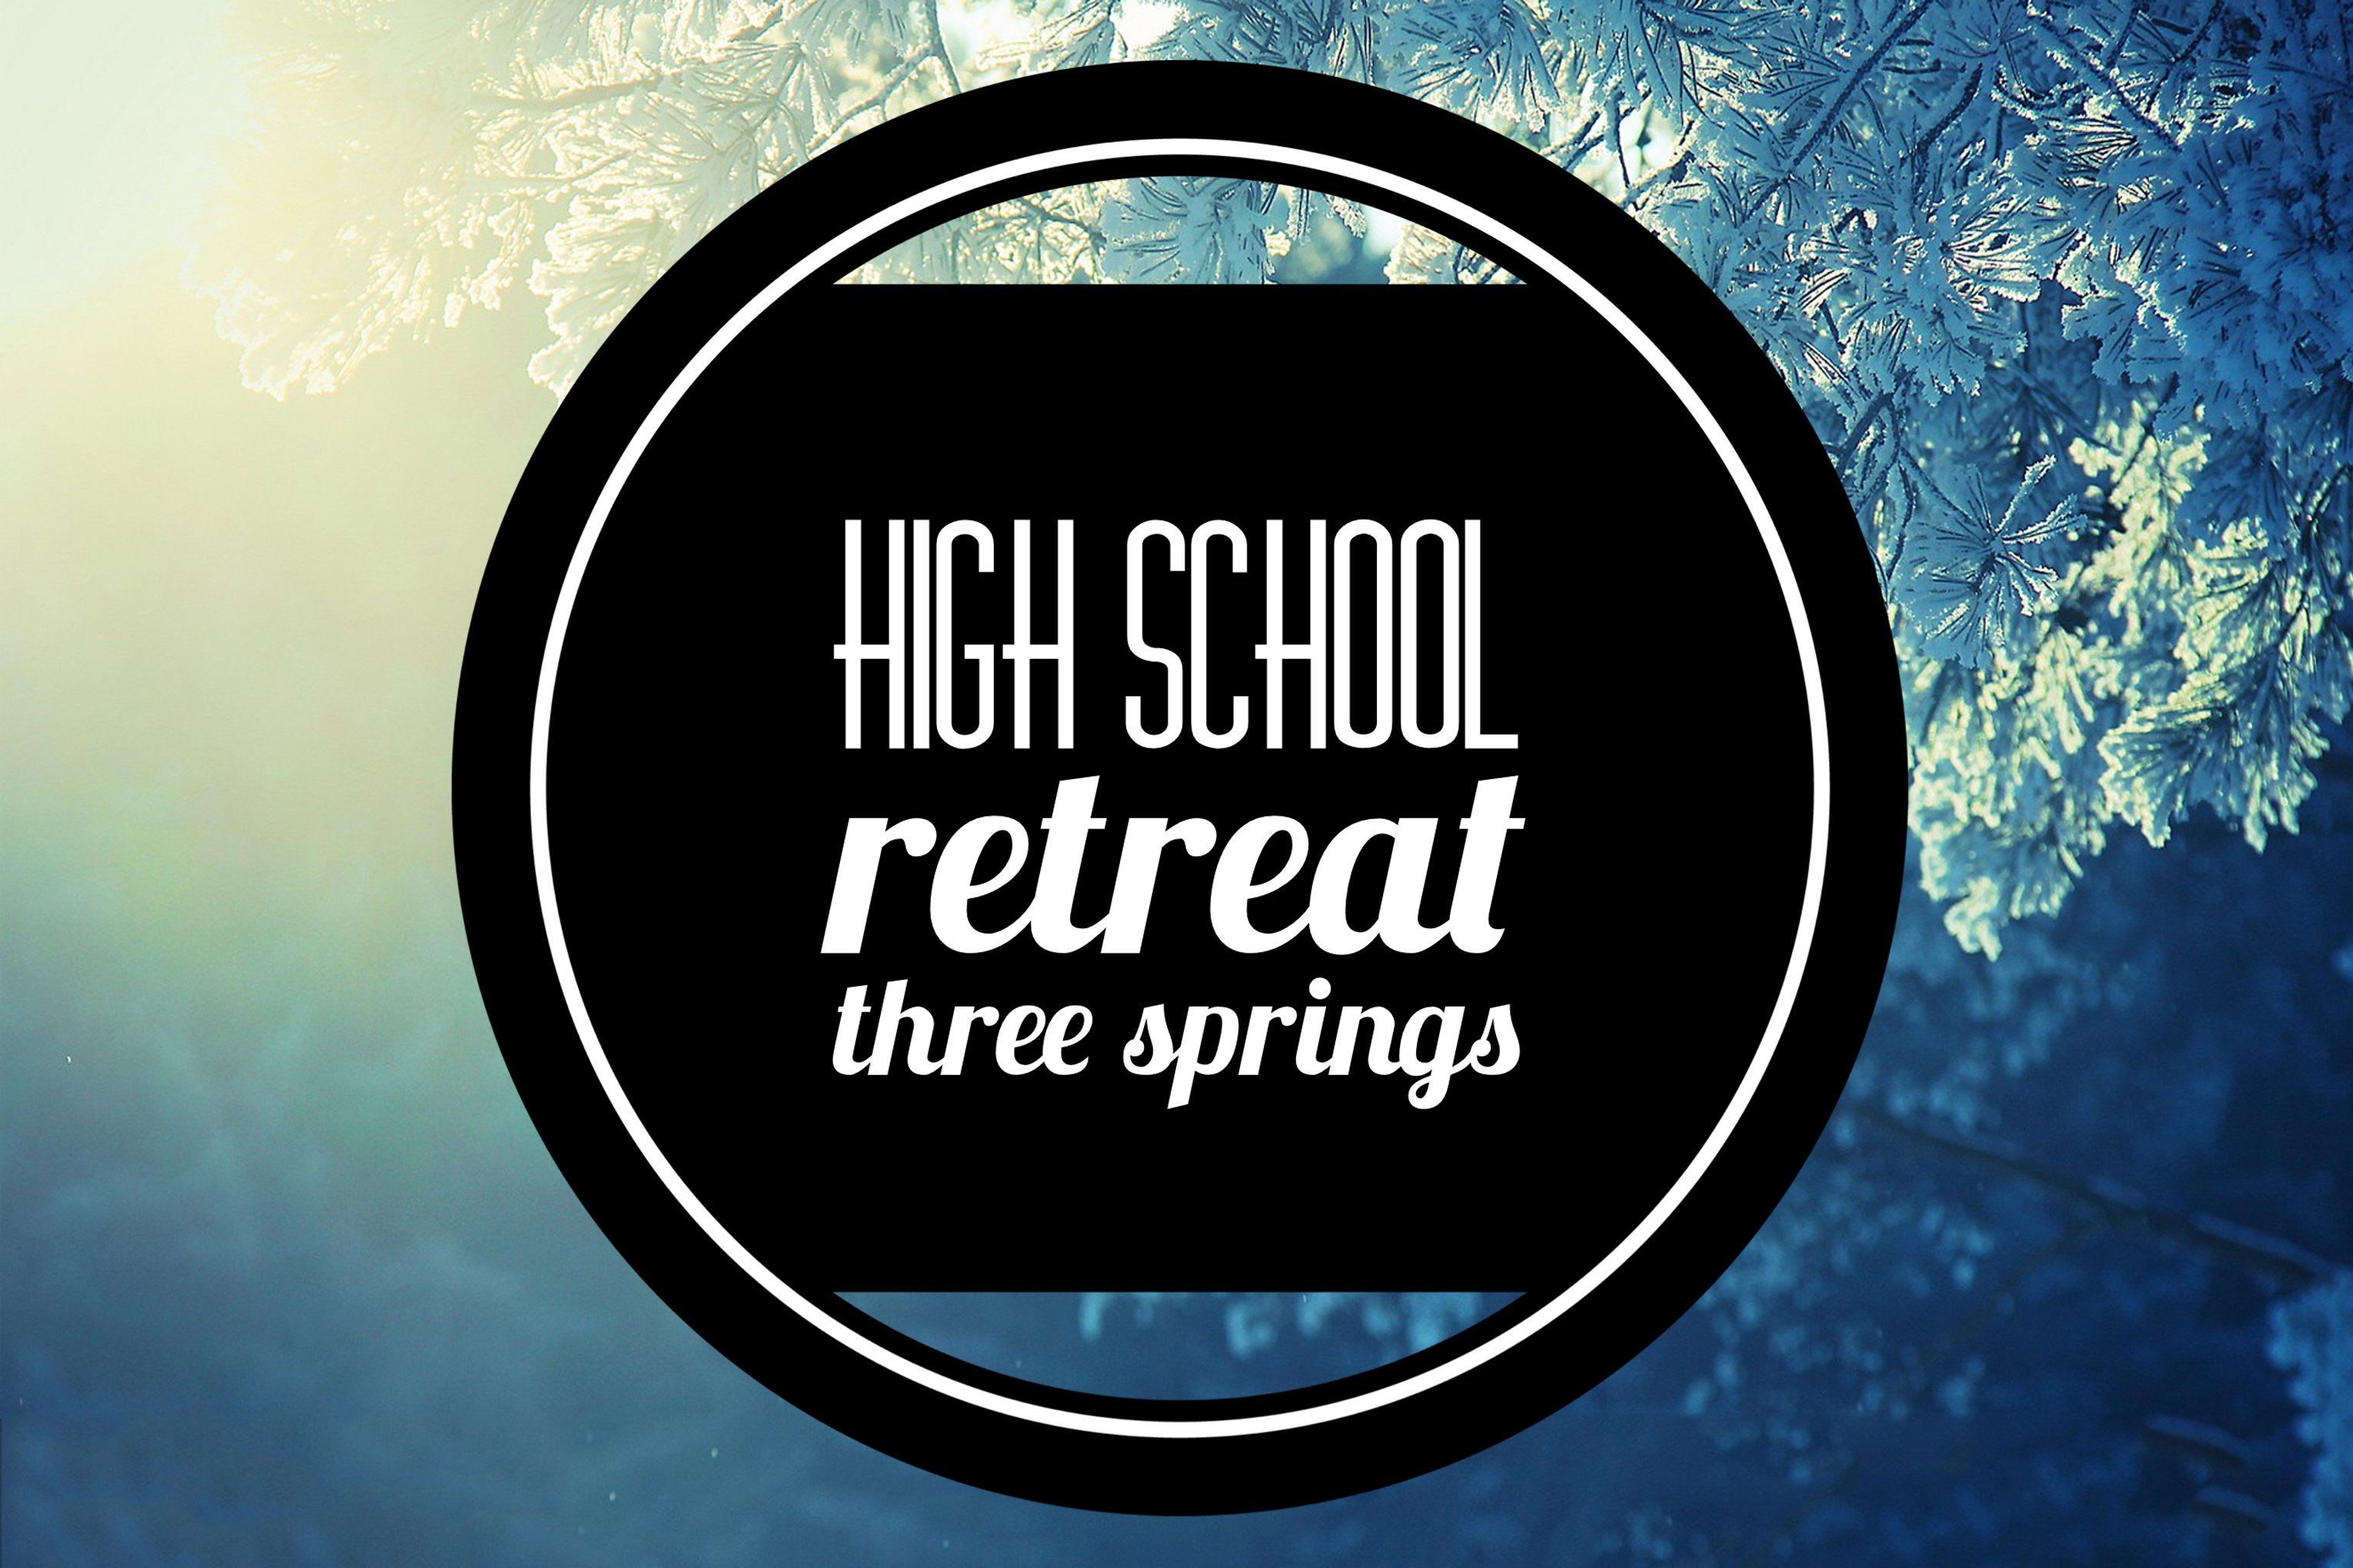 First Youth high school retreat Feb 17-19